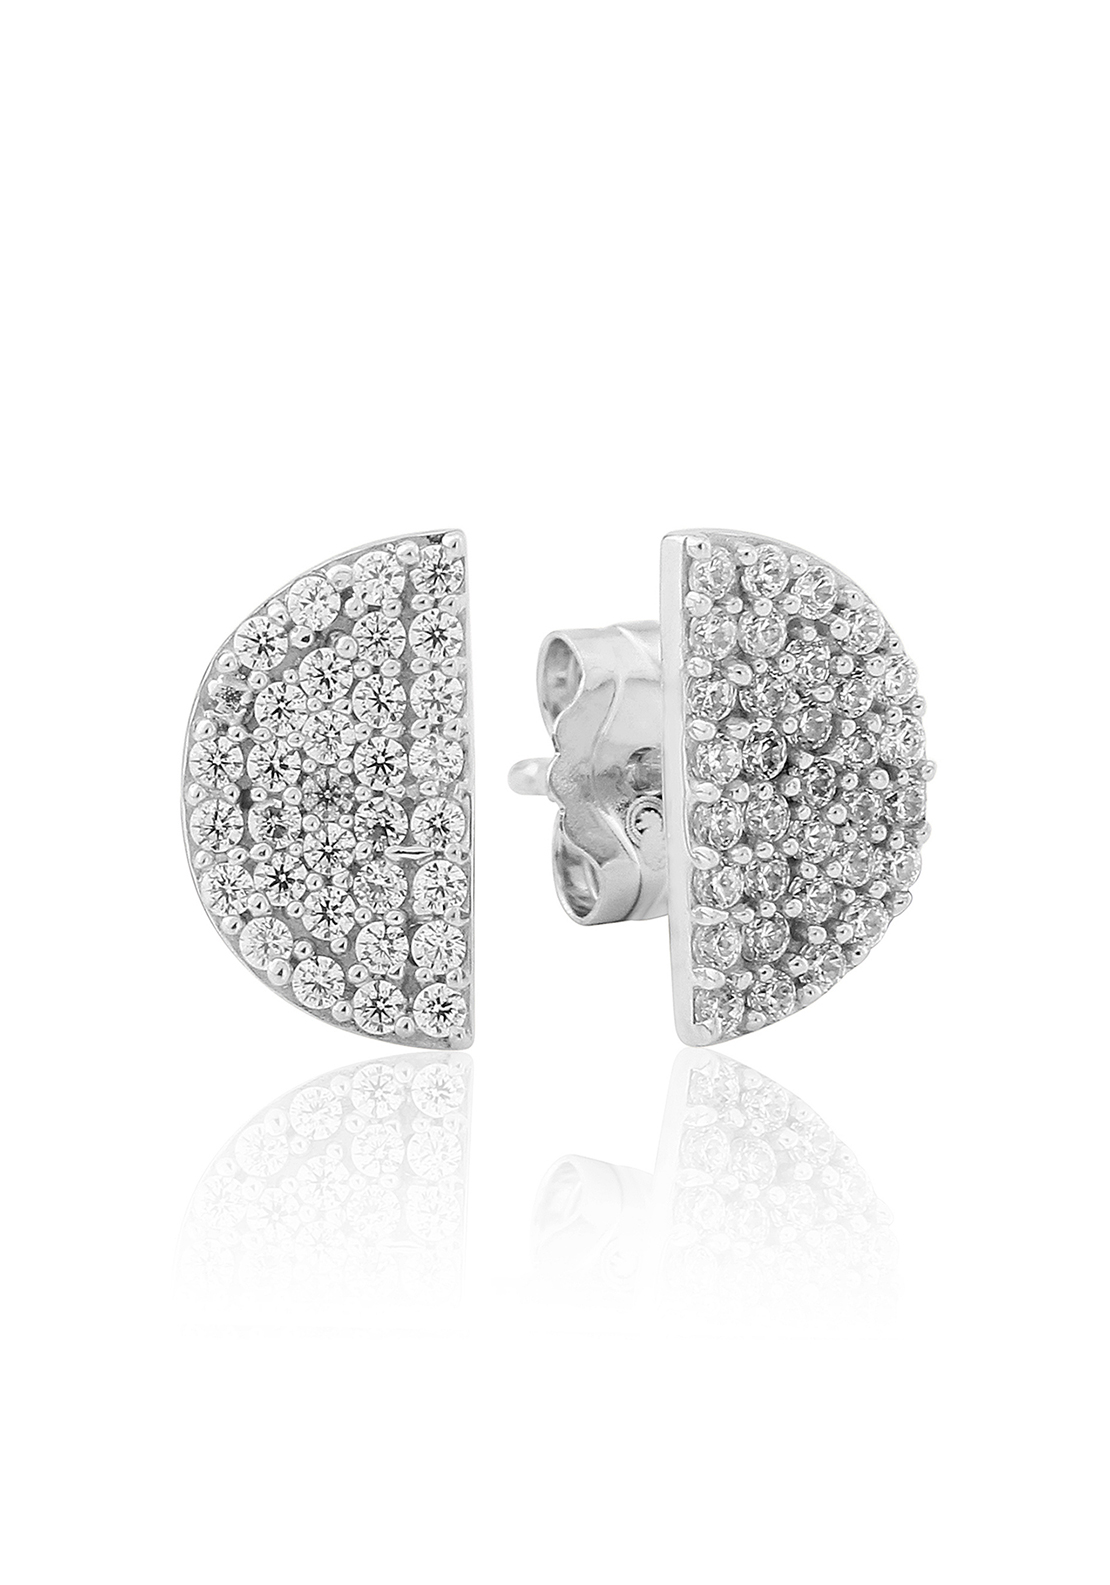 Waterford Crystal Pave Semi Circle Stud Earrings, Silver